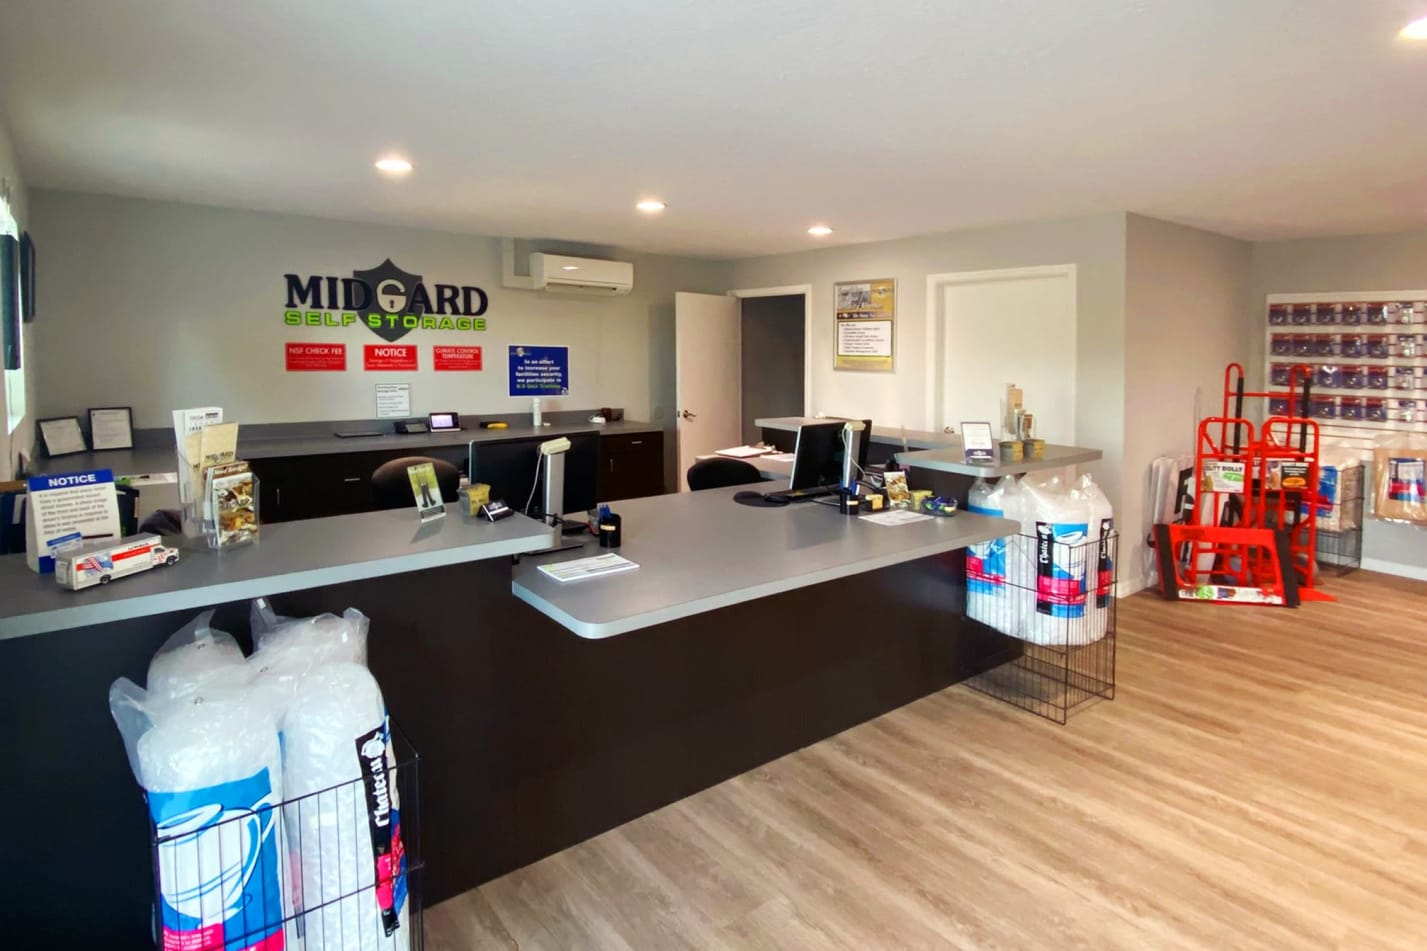 Leasing office and merchandise at Midgard Self Storage in Cocoa, FL